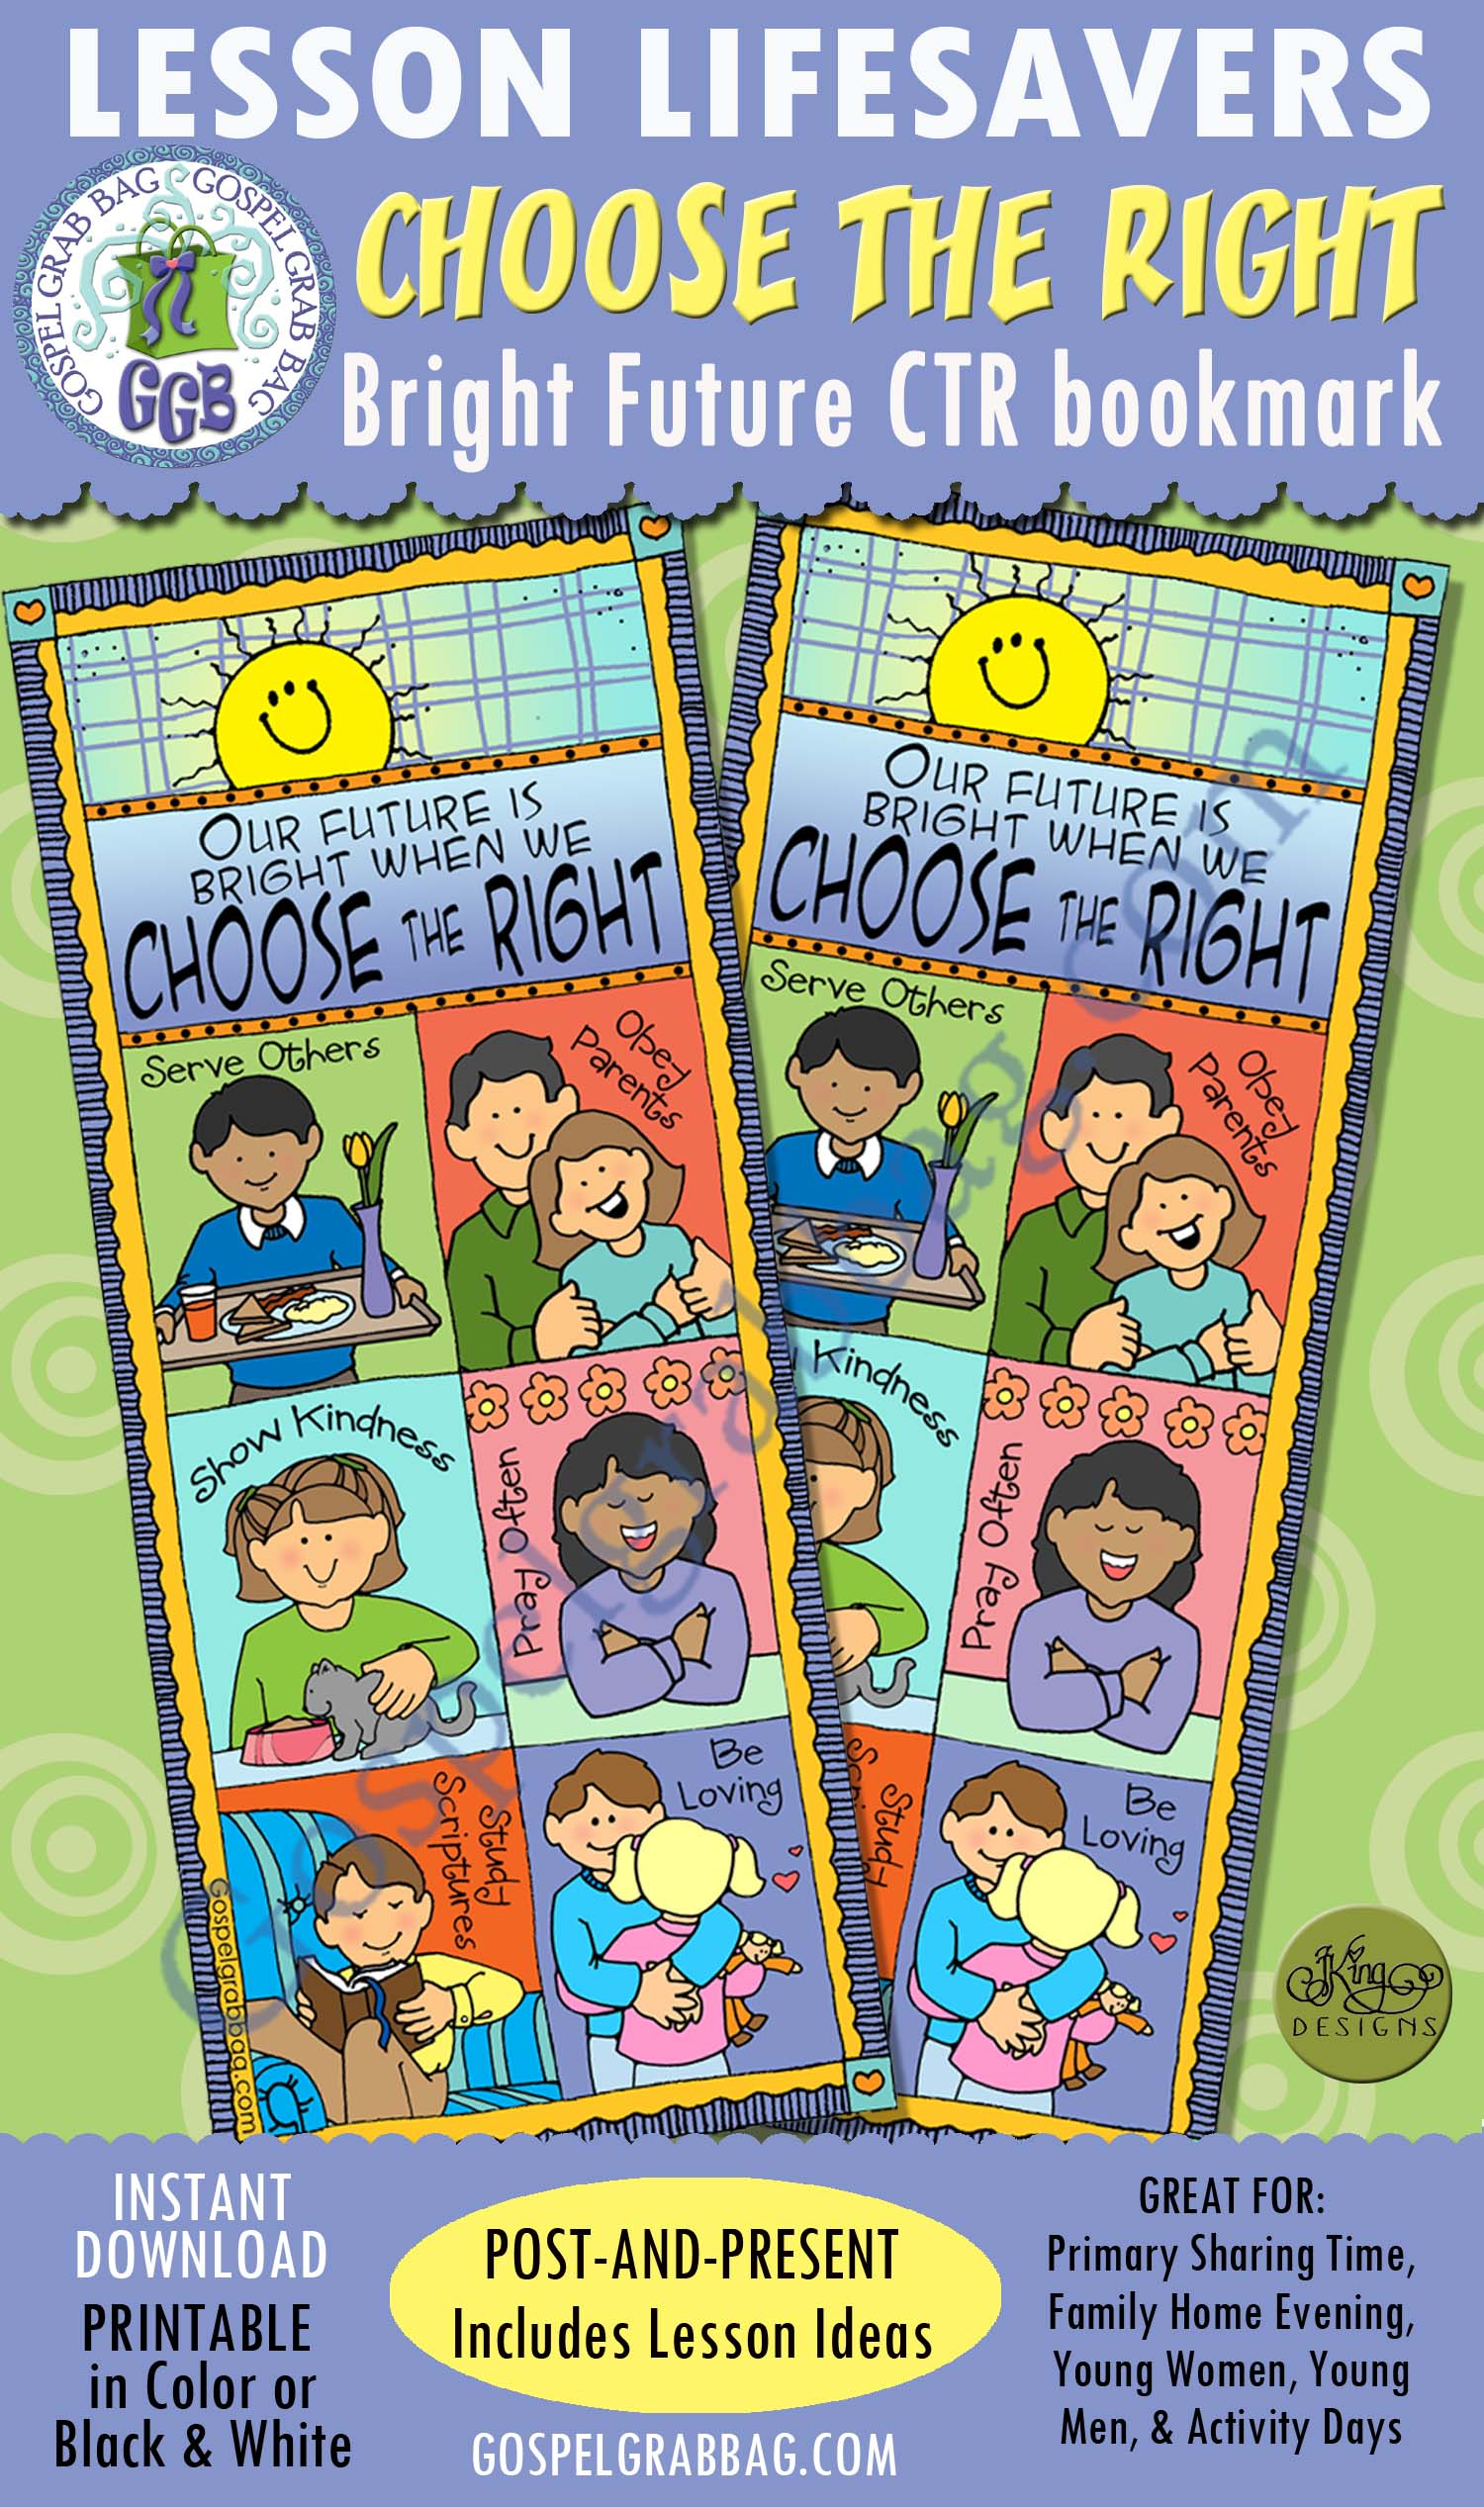 CHOOSE THE RIGHT: Our Future Is Bright When We CHOOSE THE RIGHT bookmark